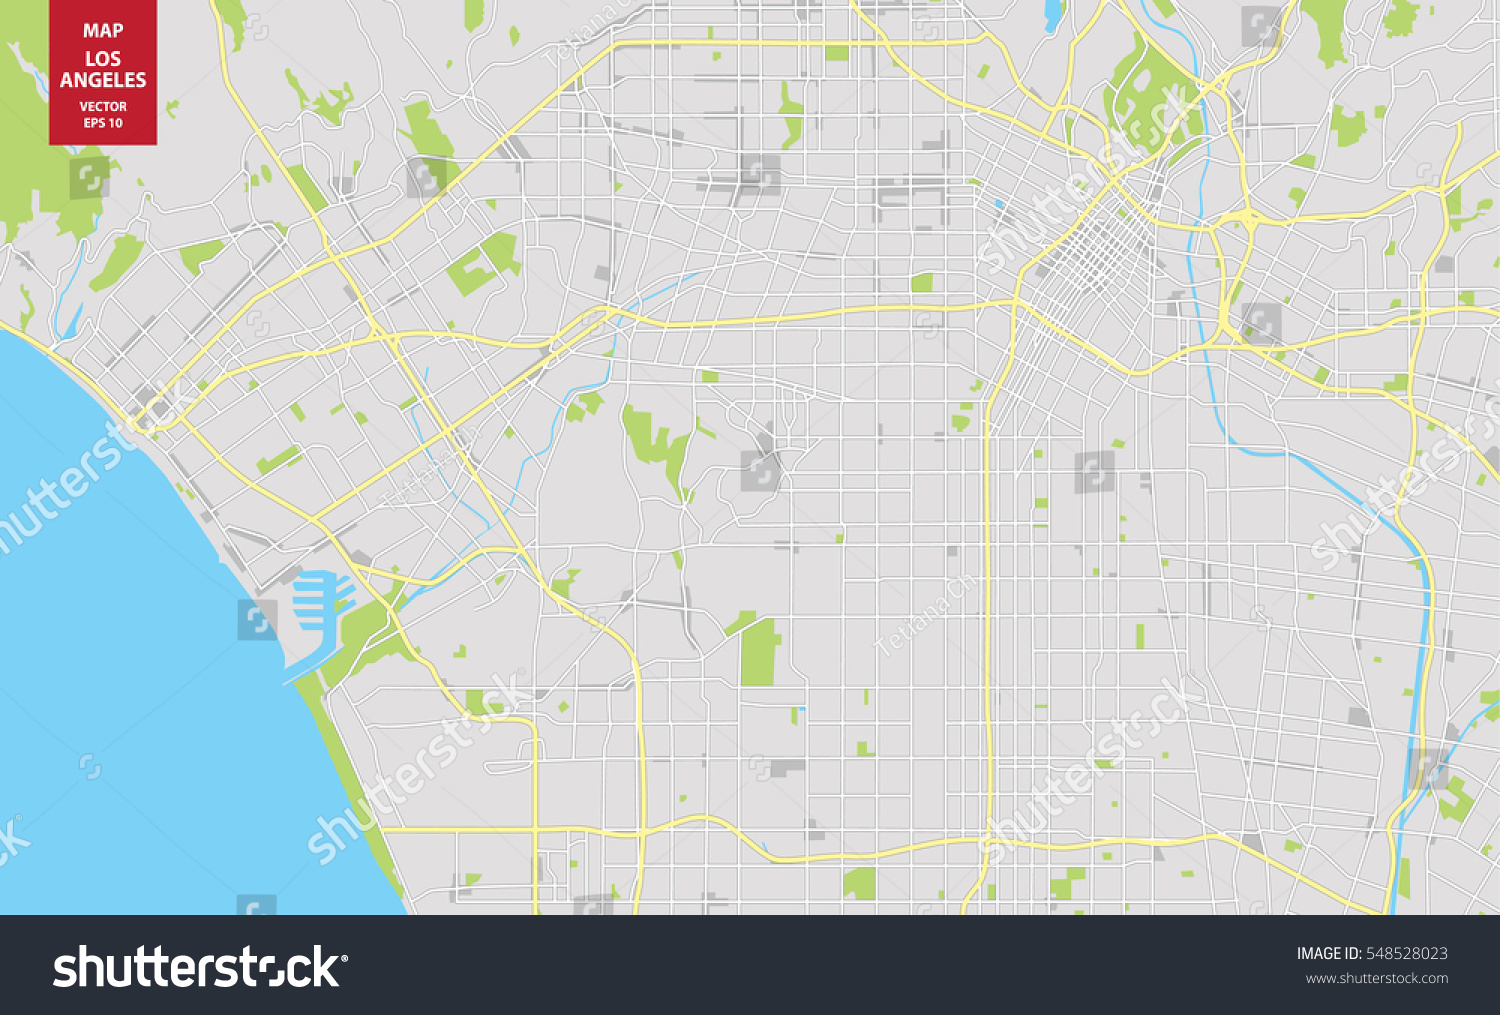 Vector Color Map Los Angeles Usa Stock Vector  Shutterstock - Los angeles in world map